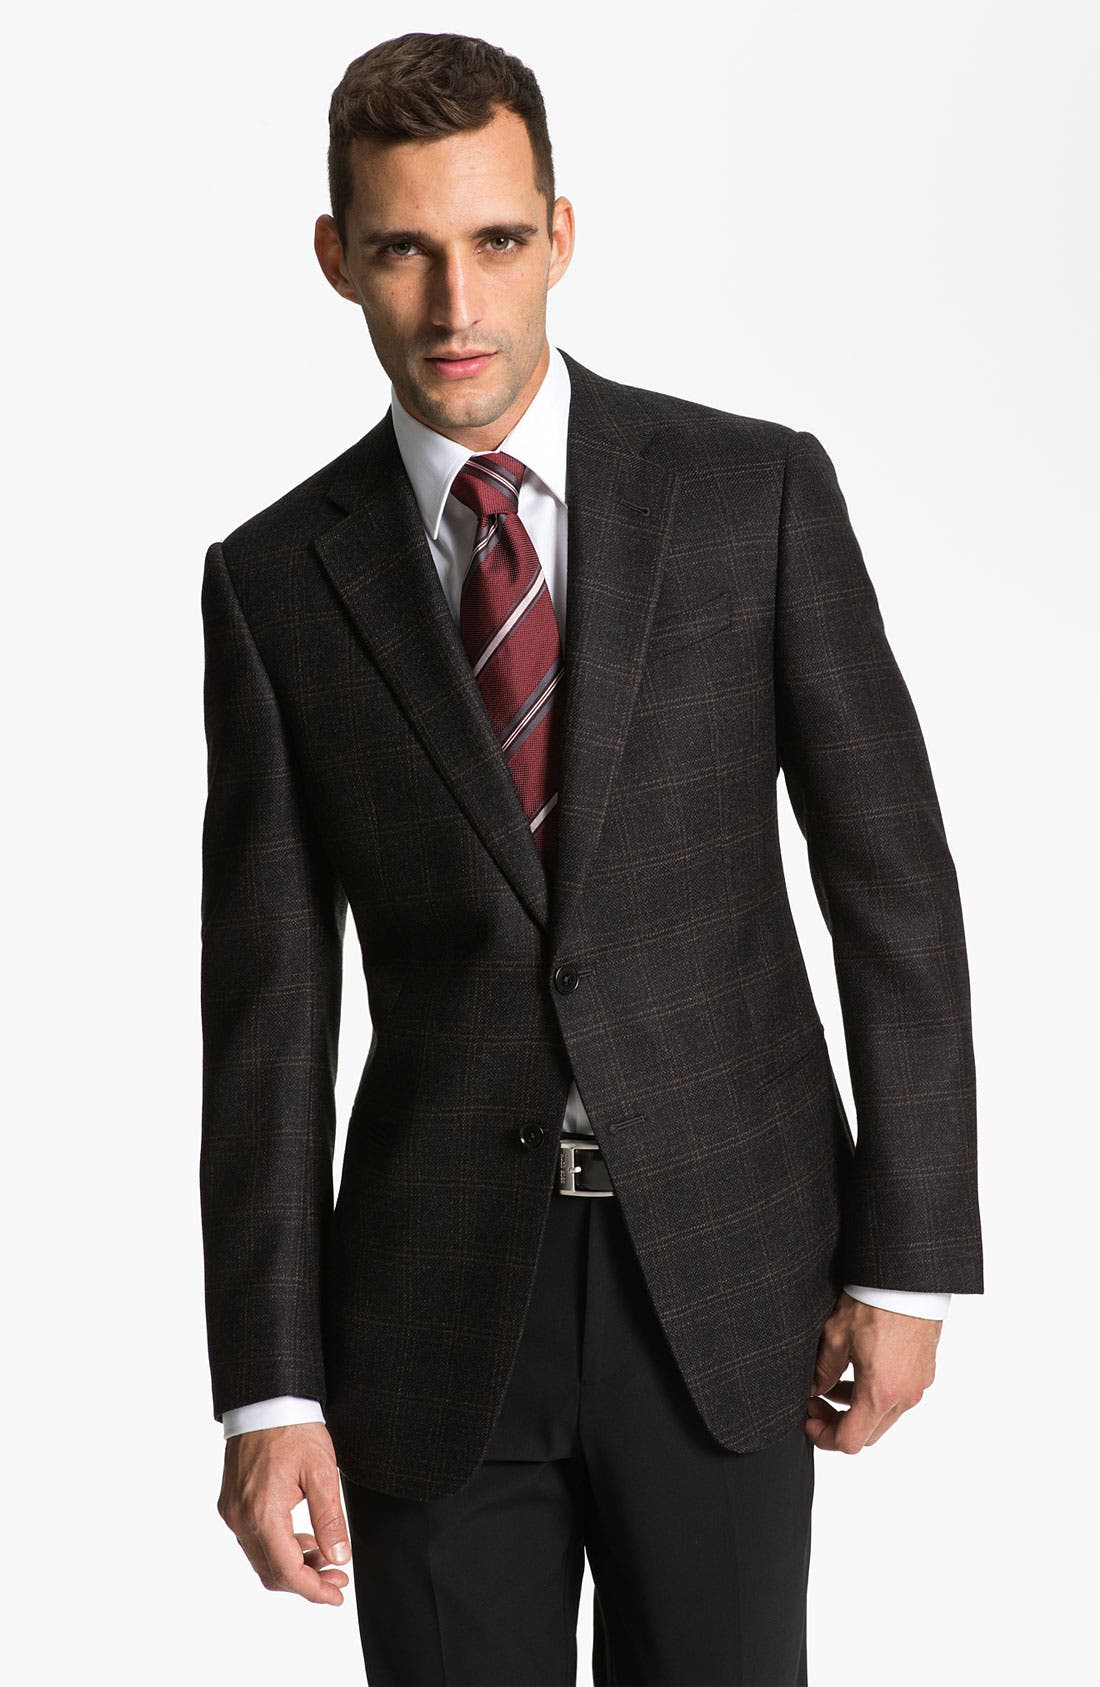 Alternate Image 1 Selected - Armani Collezioni 'Giorgio' Trim Fit Plaid Sportcoat